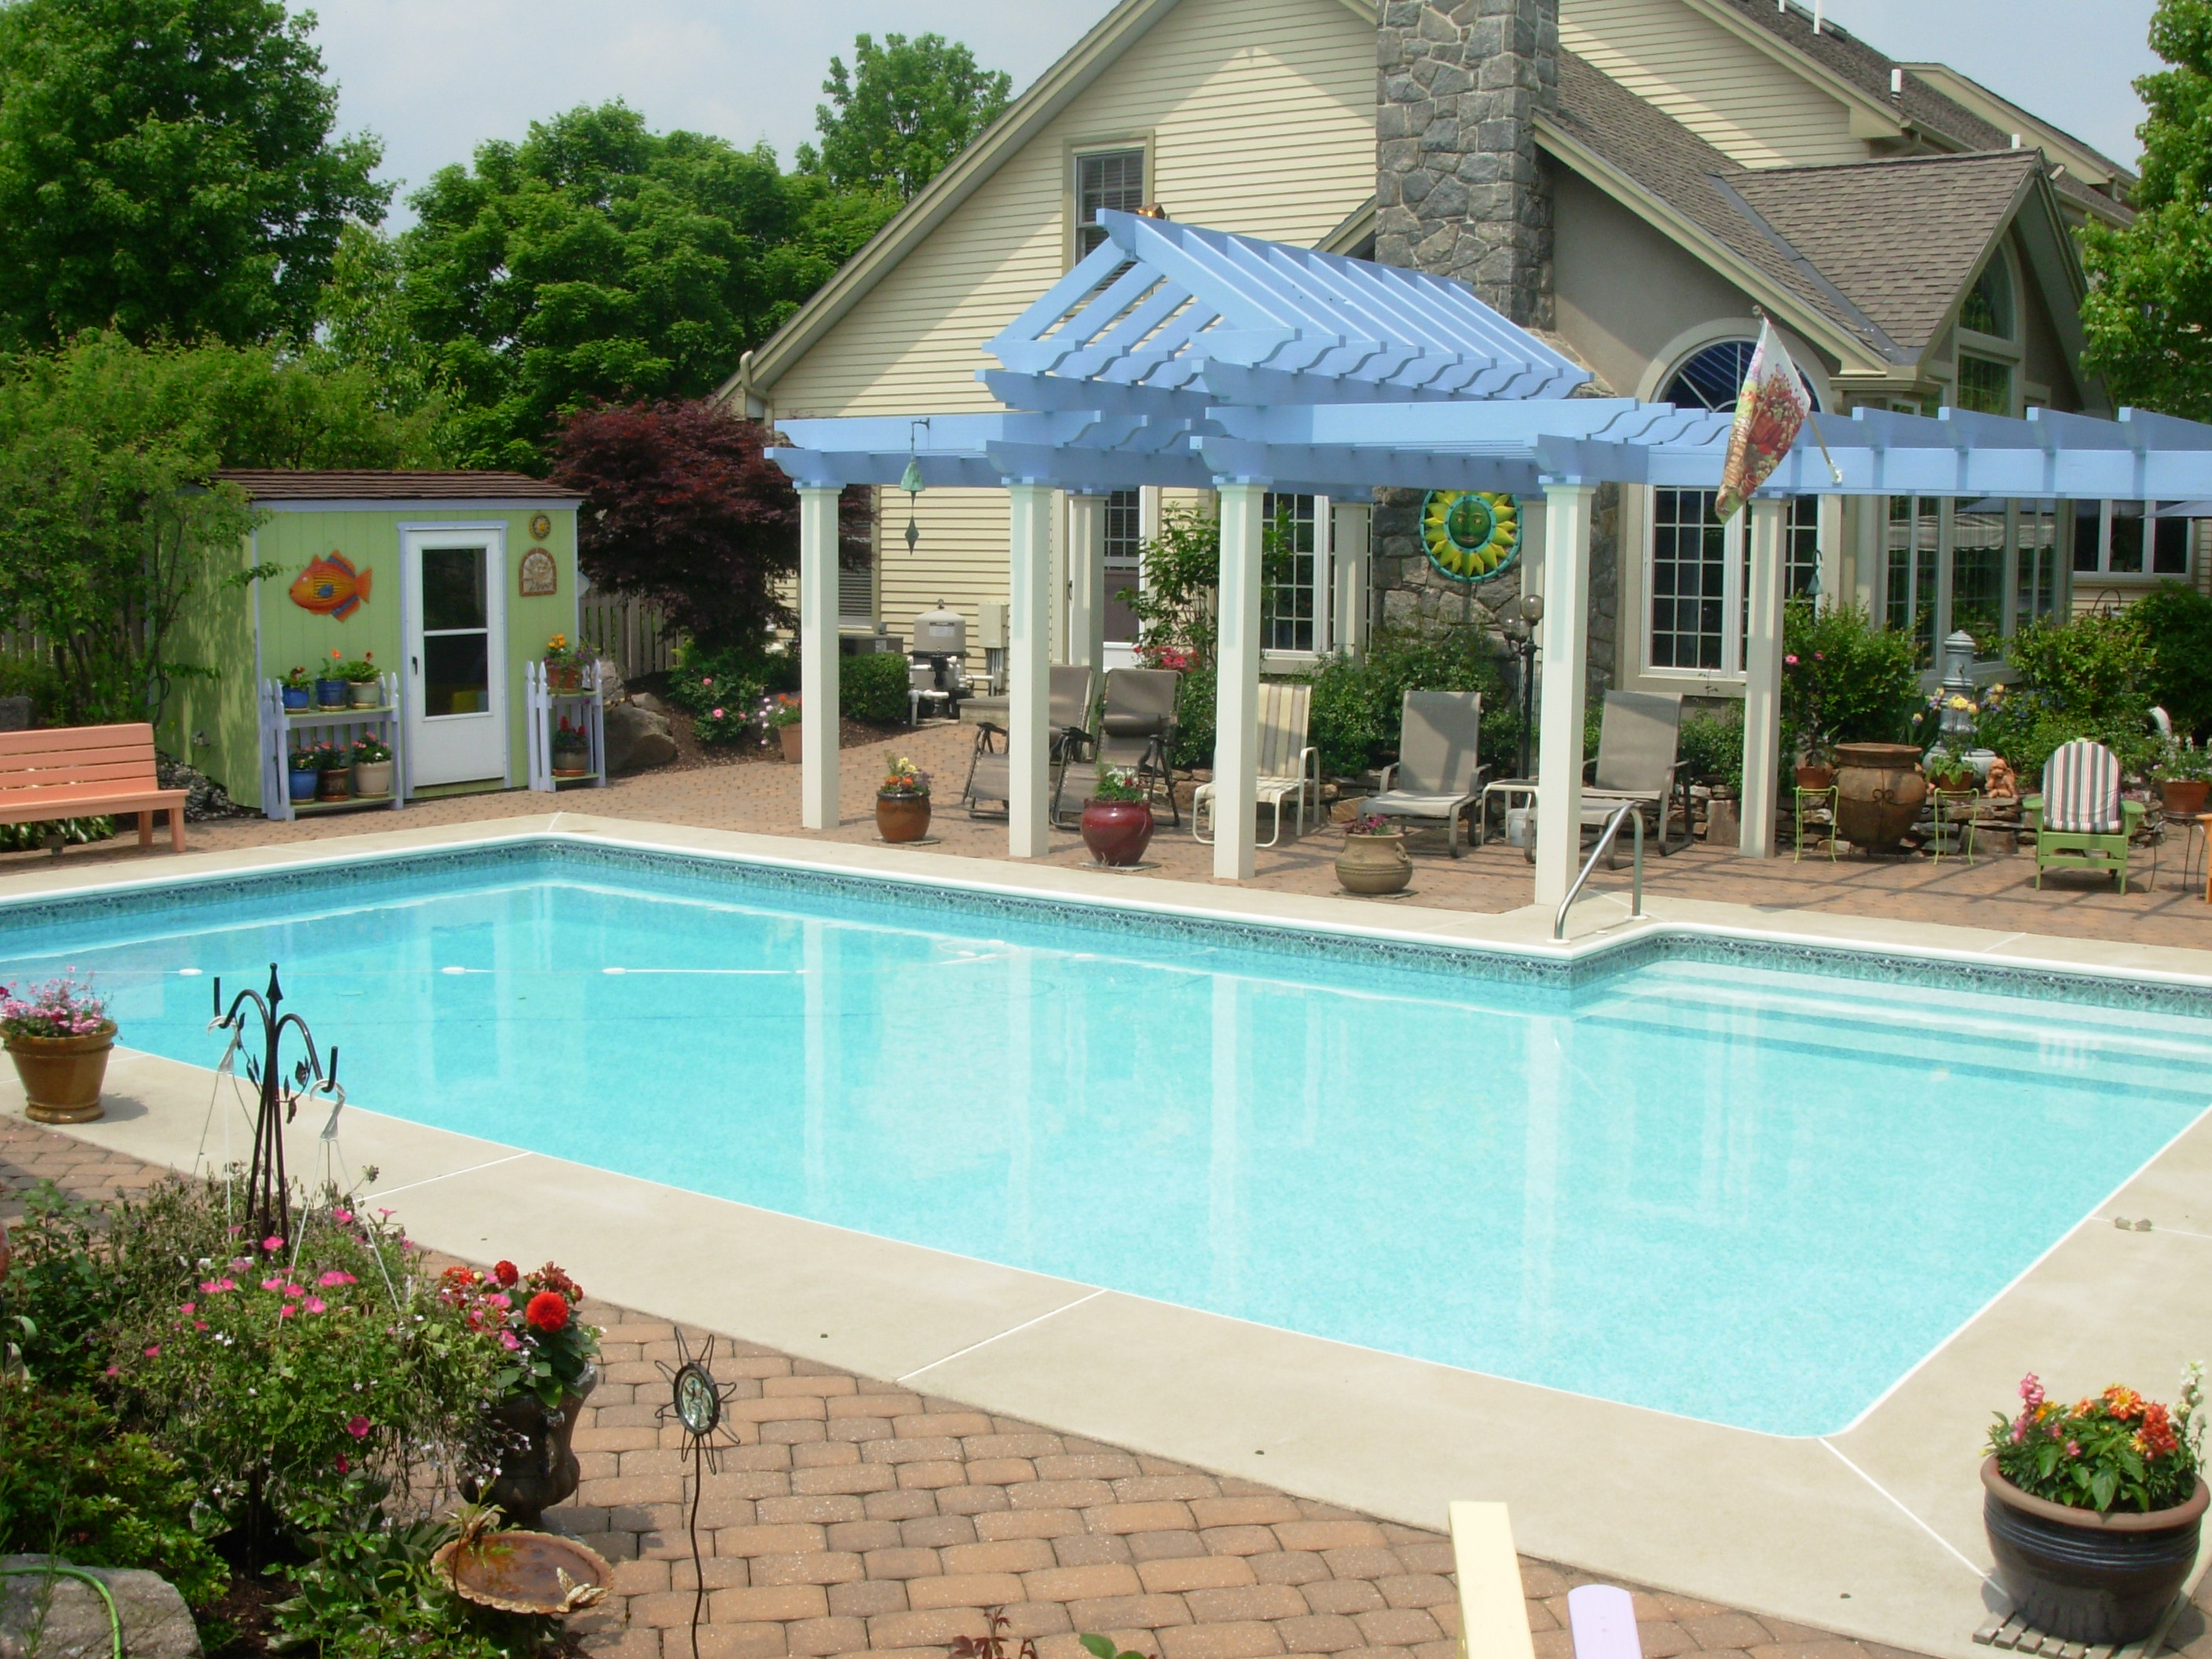 20x38 Pool Rectangle Pool - Wyomissing, PA